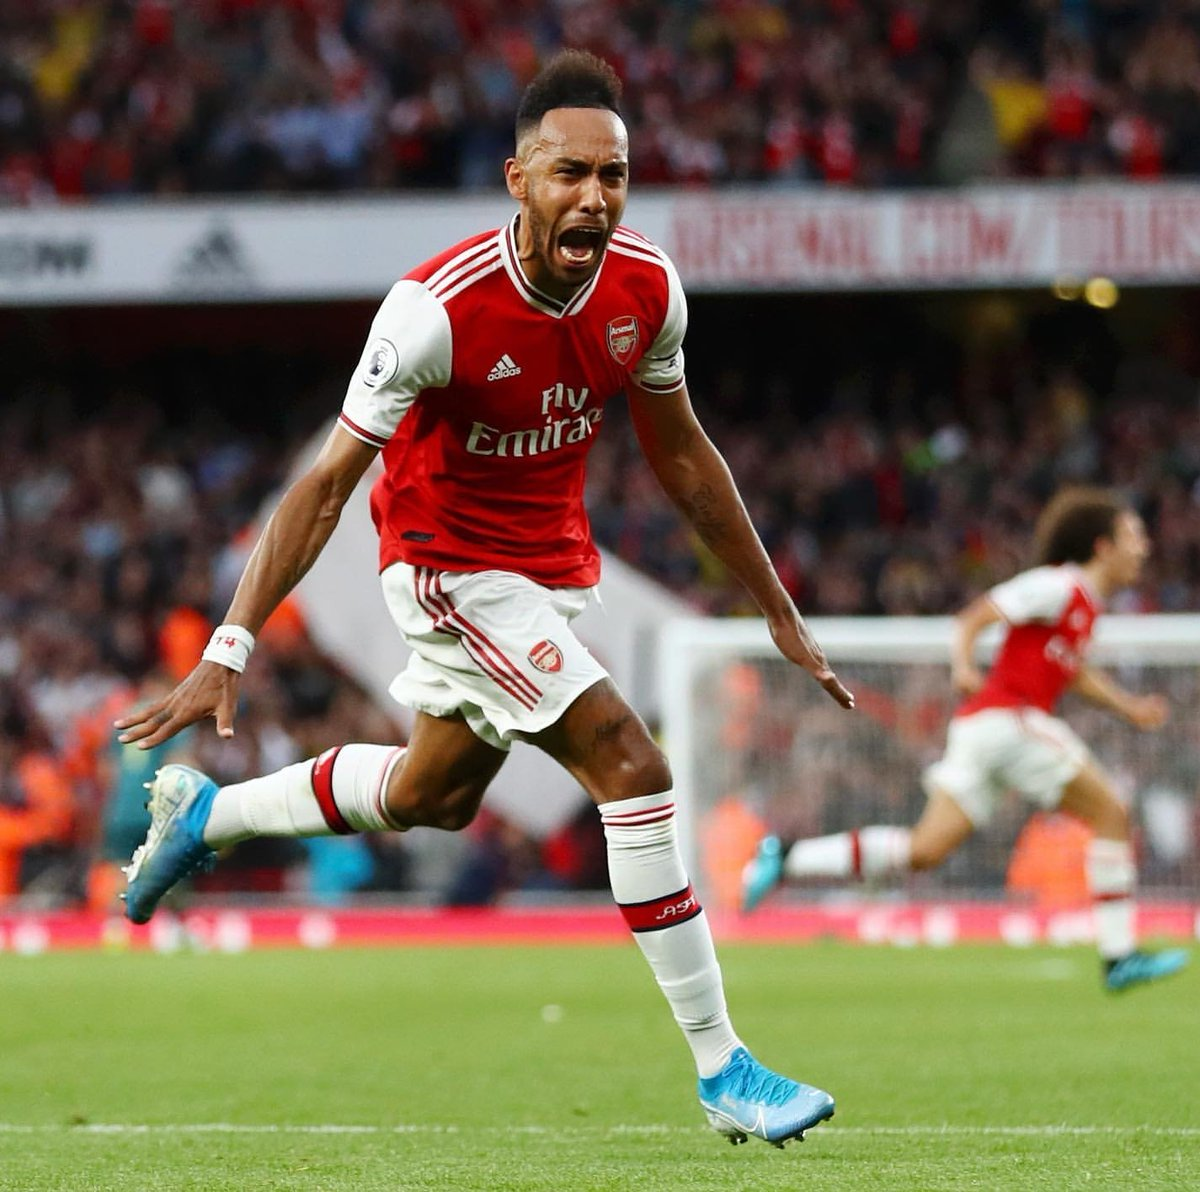 He's clearly Arsenal's best player for a while now...gunning for another golden boot, putting Gabon on the global map of football.....  #Aubameyang is world class for me, We have to show him more respect.  Clinical  Instinctive  Pace and trickery  Finisher   pic.twitter.com/uob9ps8Bv2